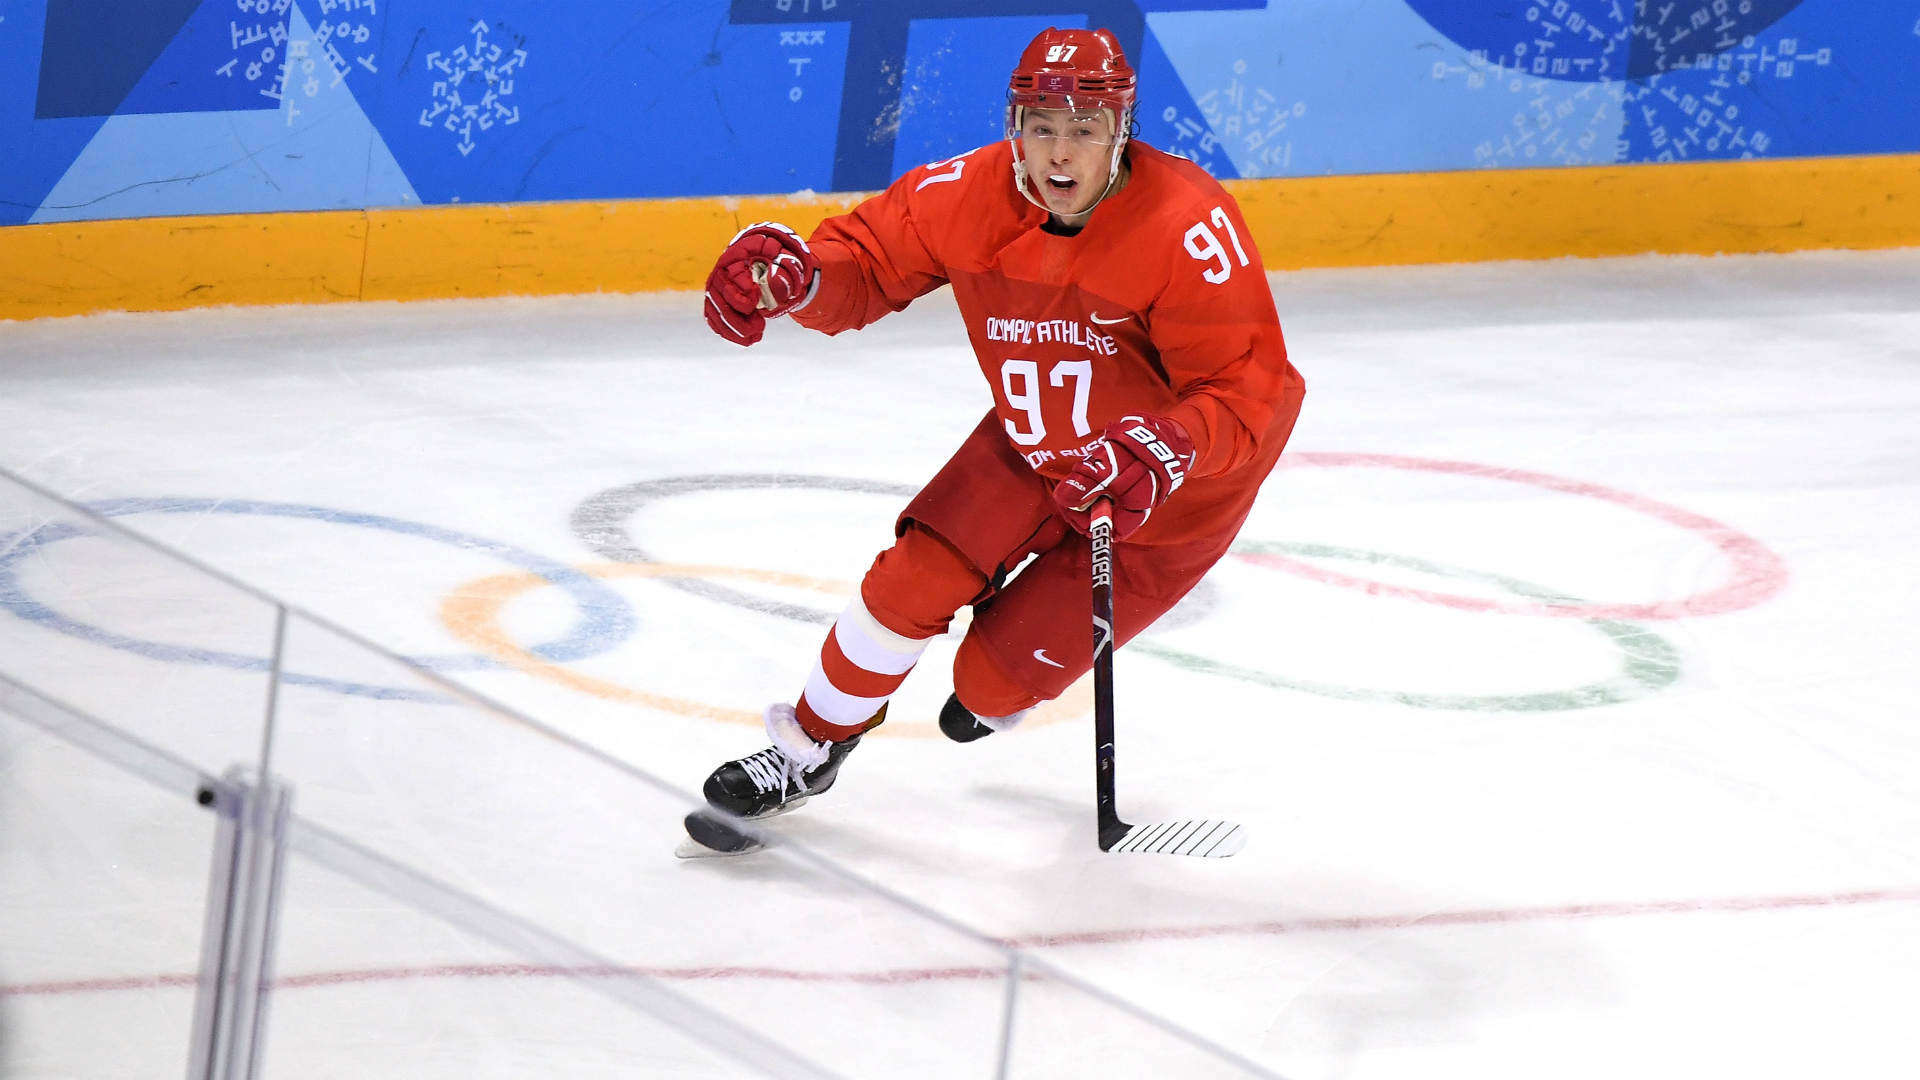 NHL trade news: Devils acquire winger Nikita Gusev from